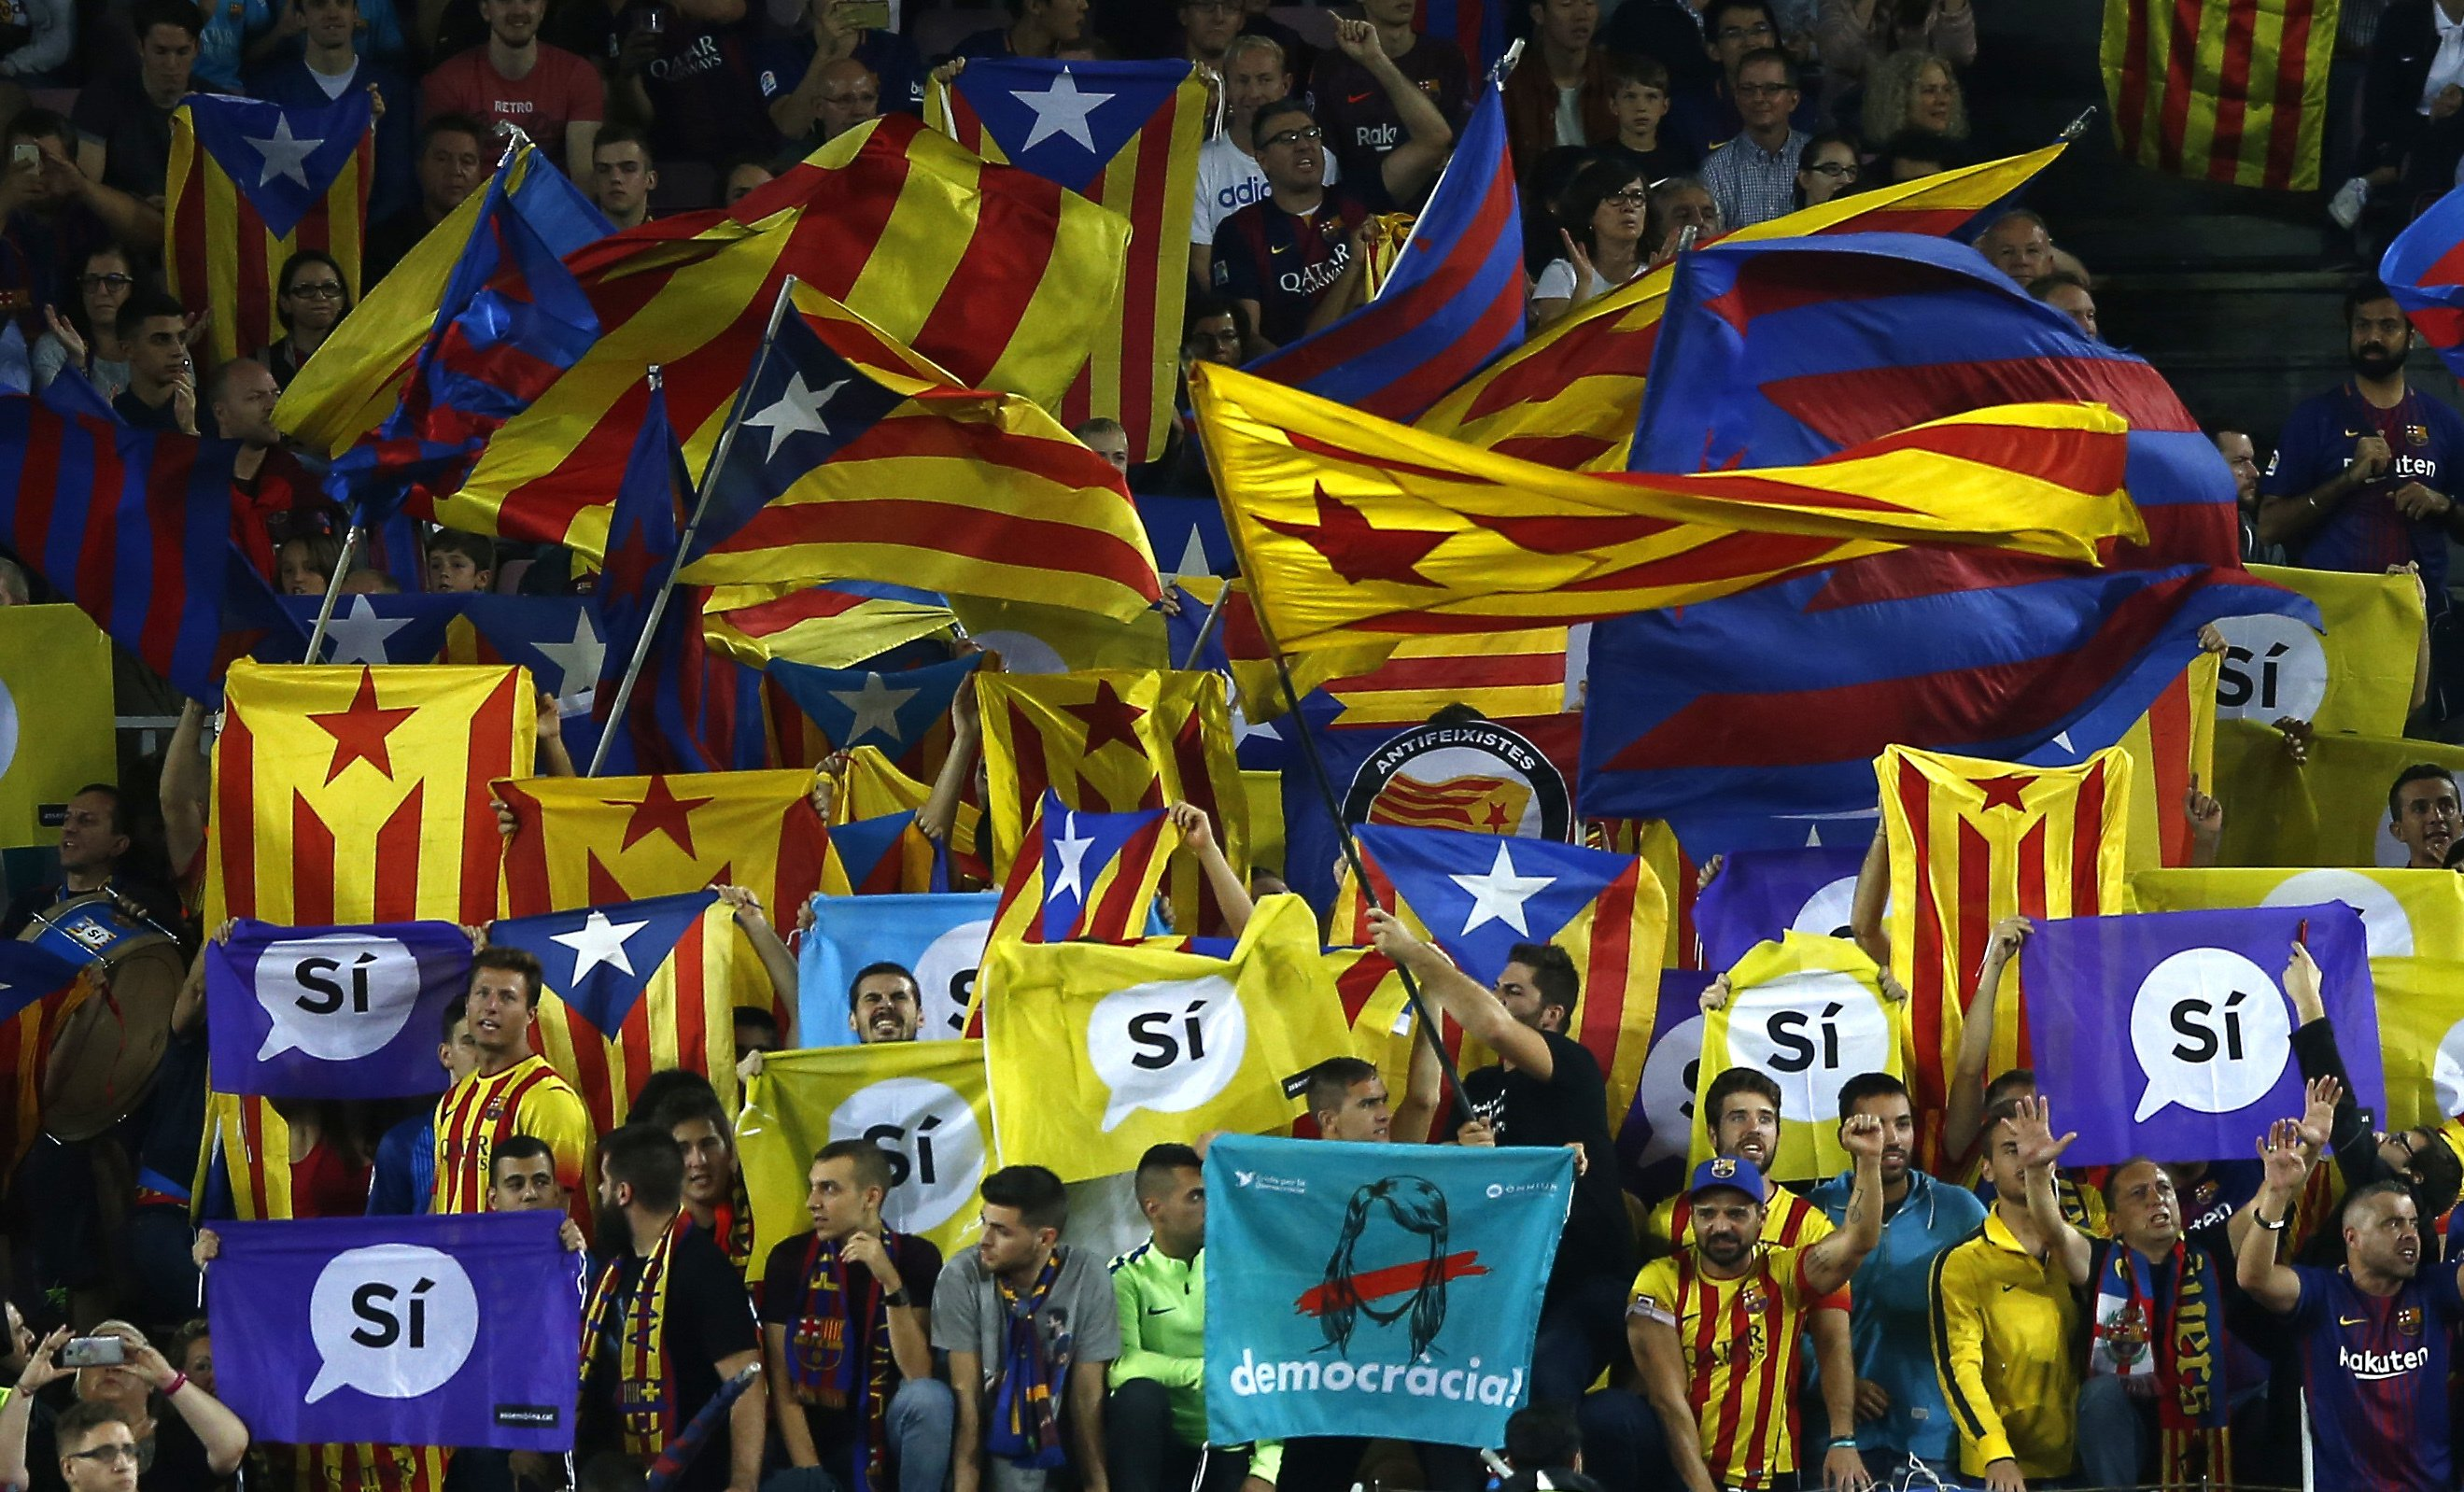 Barcelona's vast stadium gives voice to Catalan separatism